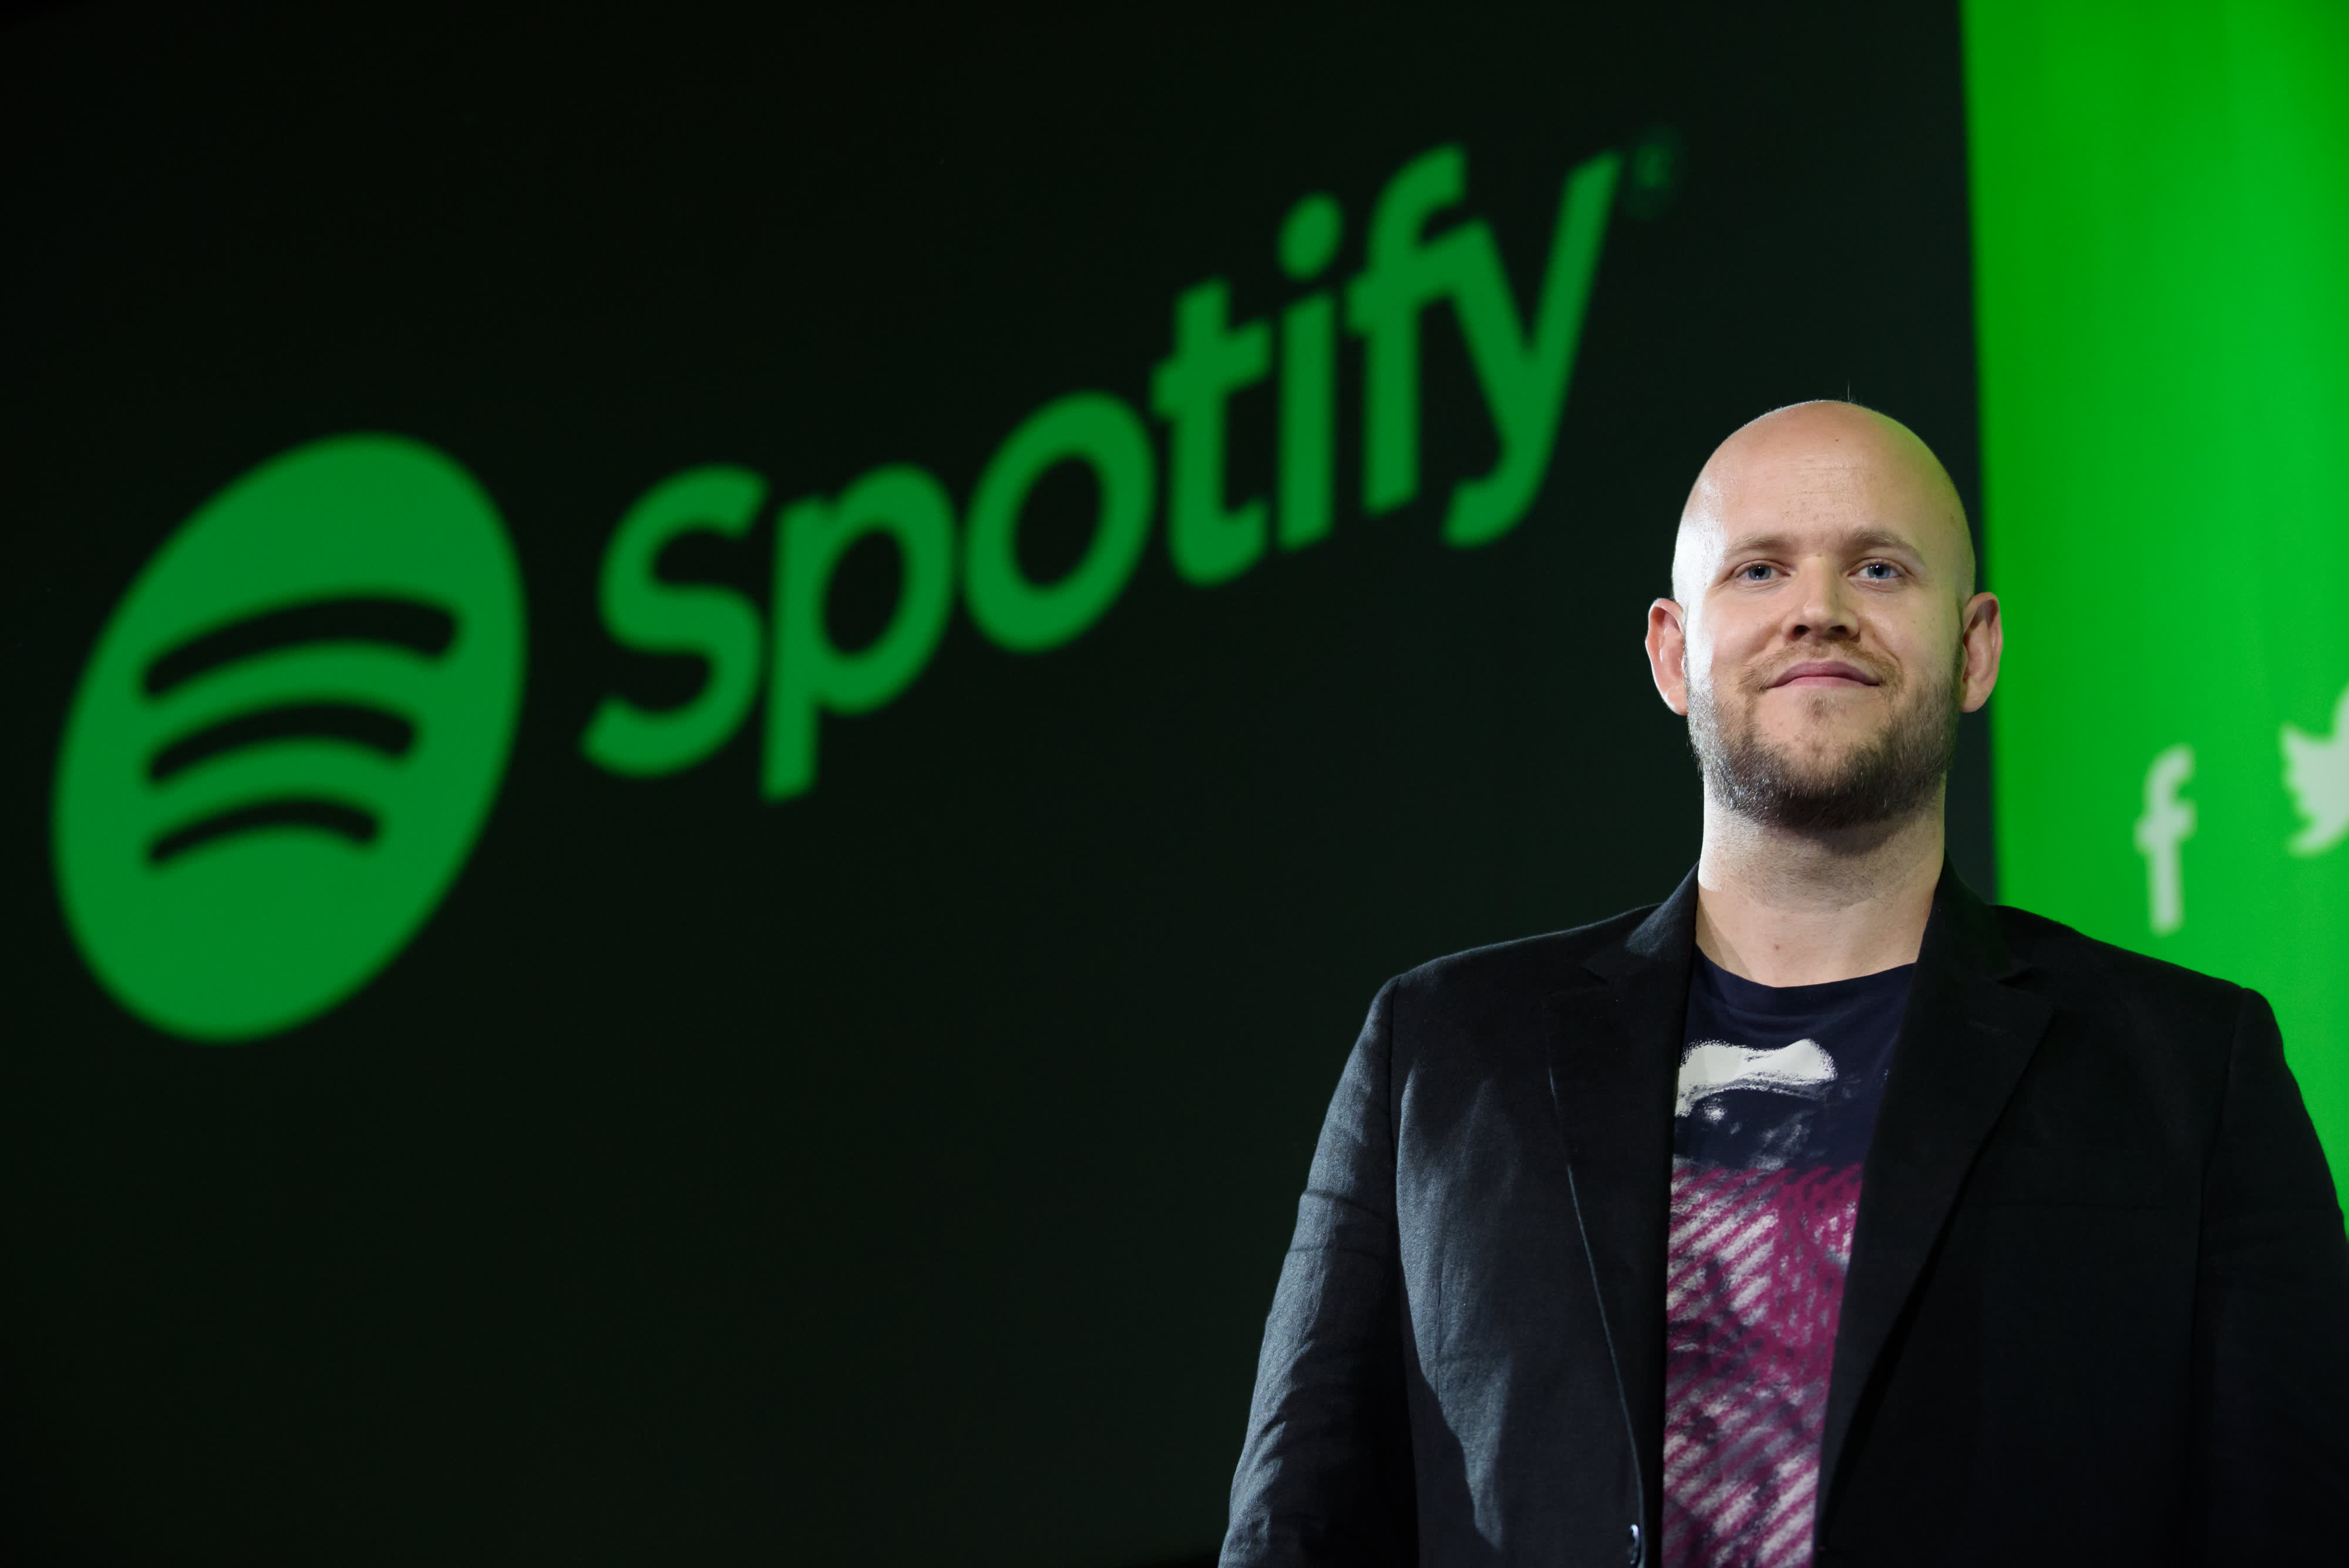 Spotify founder 'very serious' about buying his favorite club, Arsenal, says he's secured funding